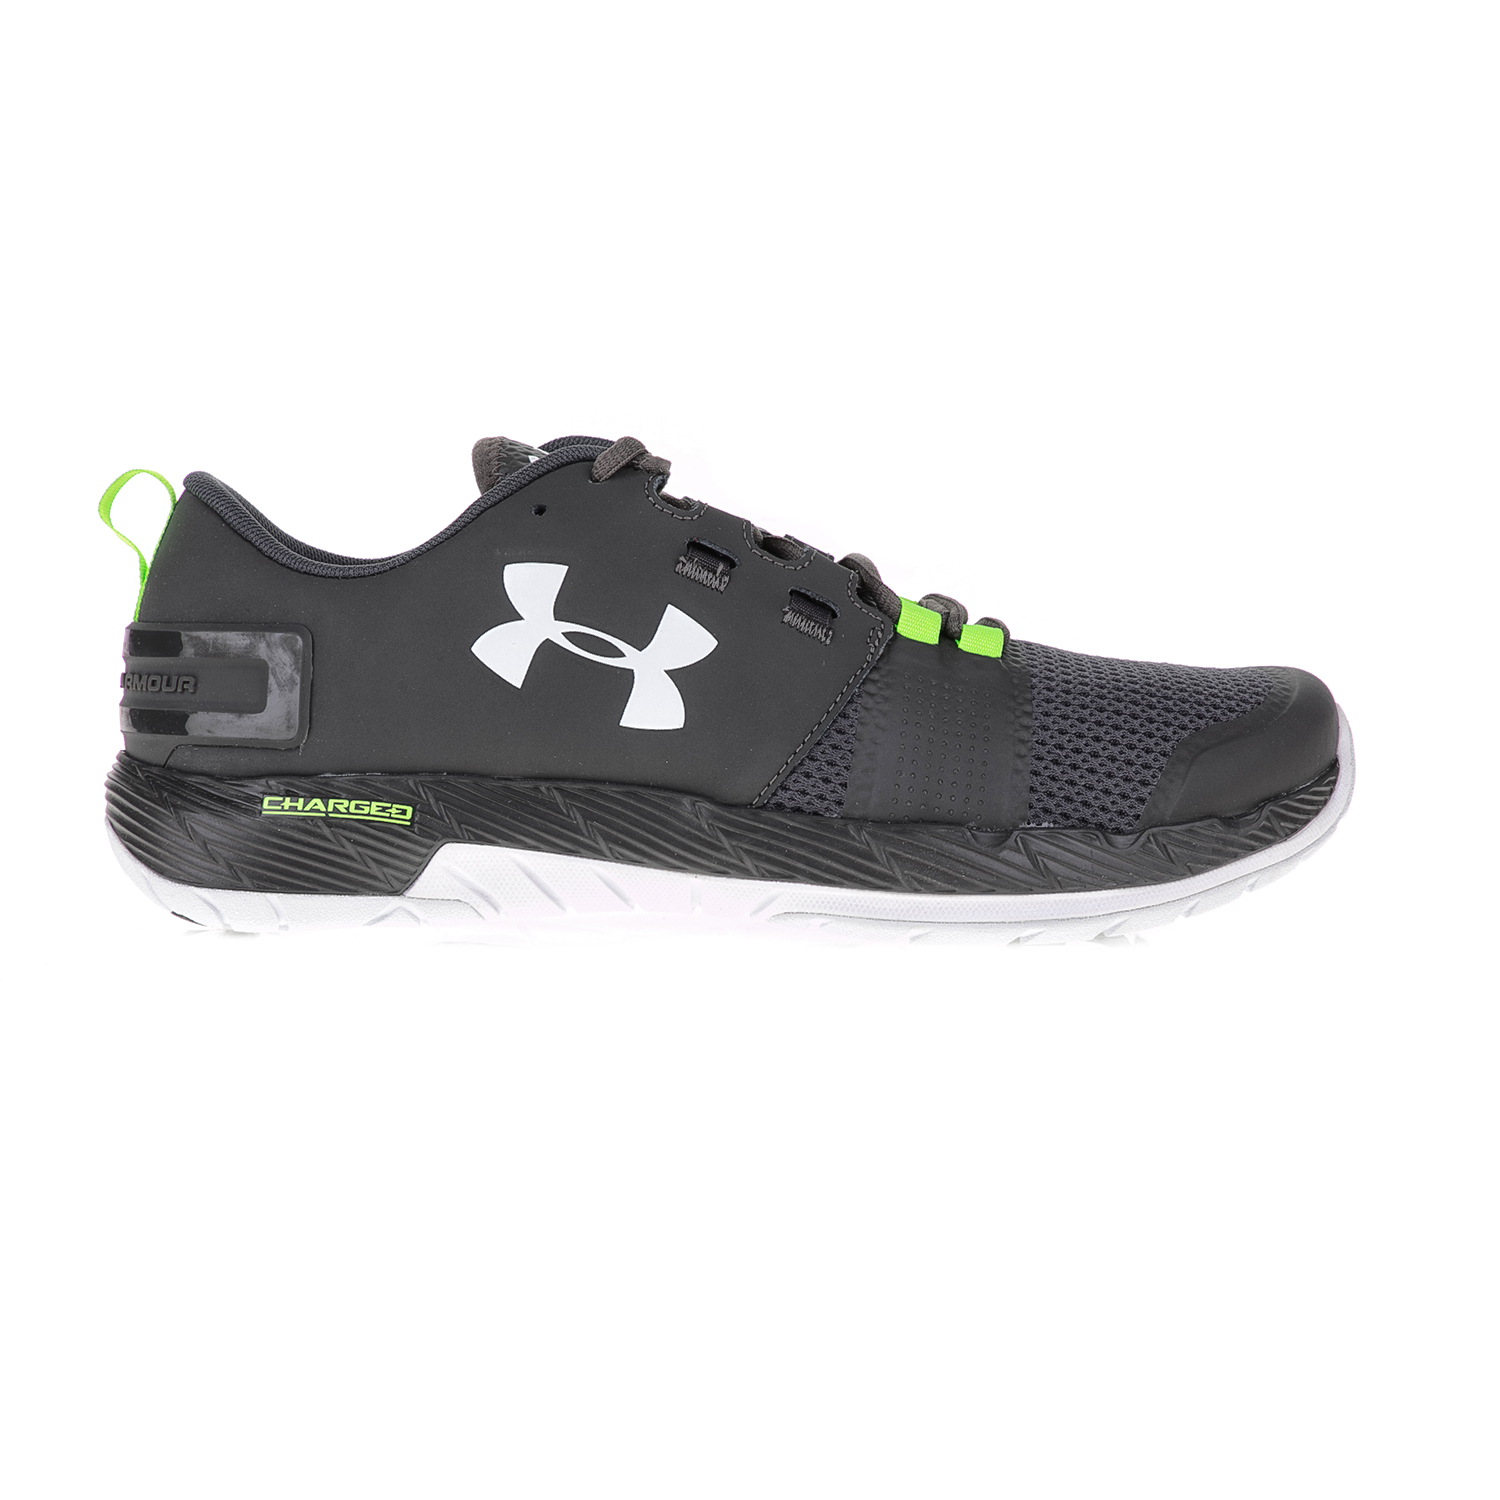 UNDER ARMOUR – Ανδρικά αθλητικά παπούτσια UNDER ARMOUR Commit TR μαύρα-πράσινα